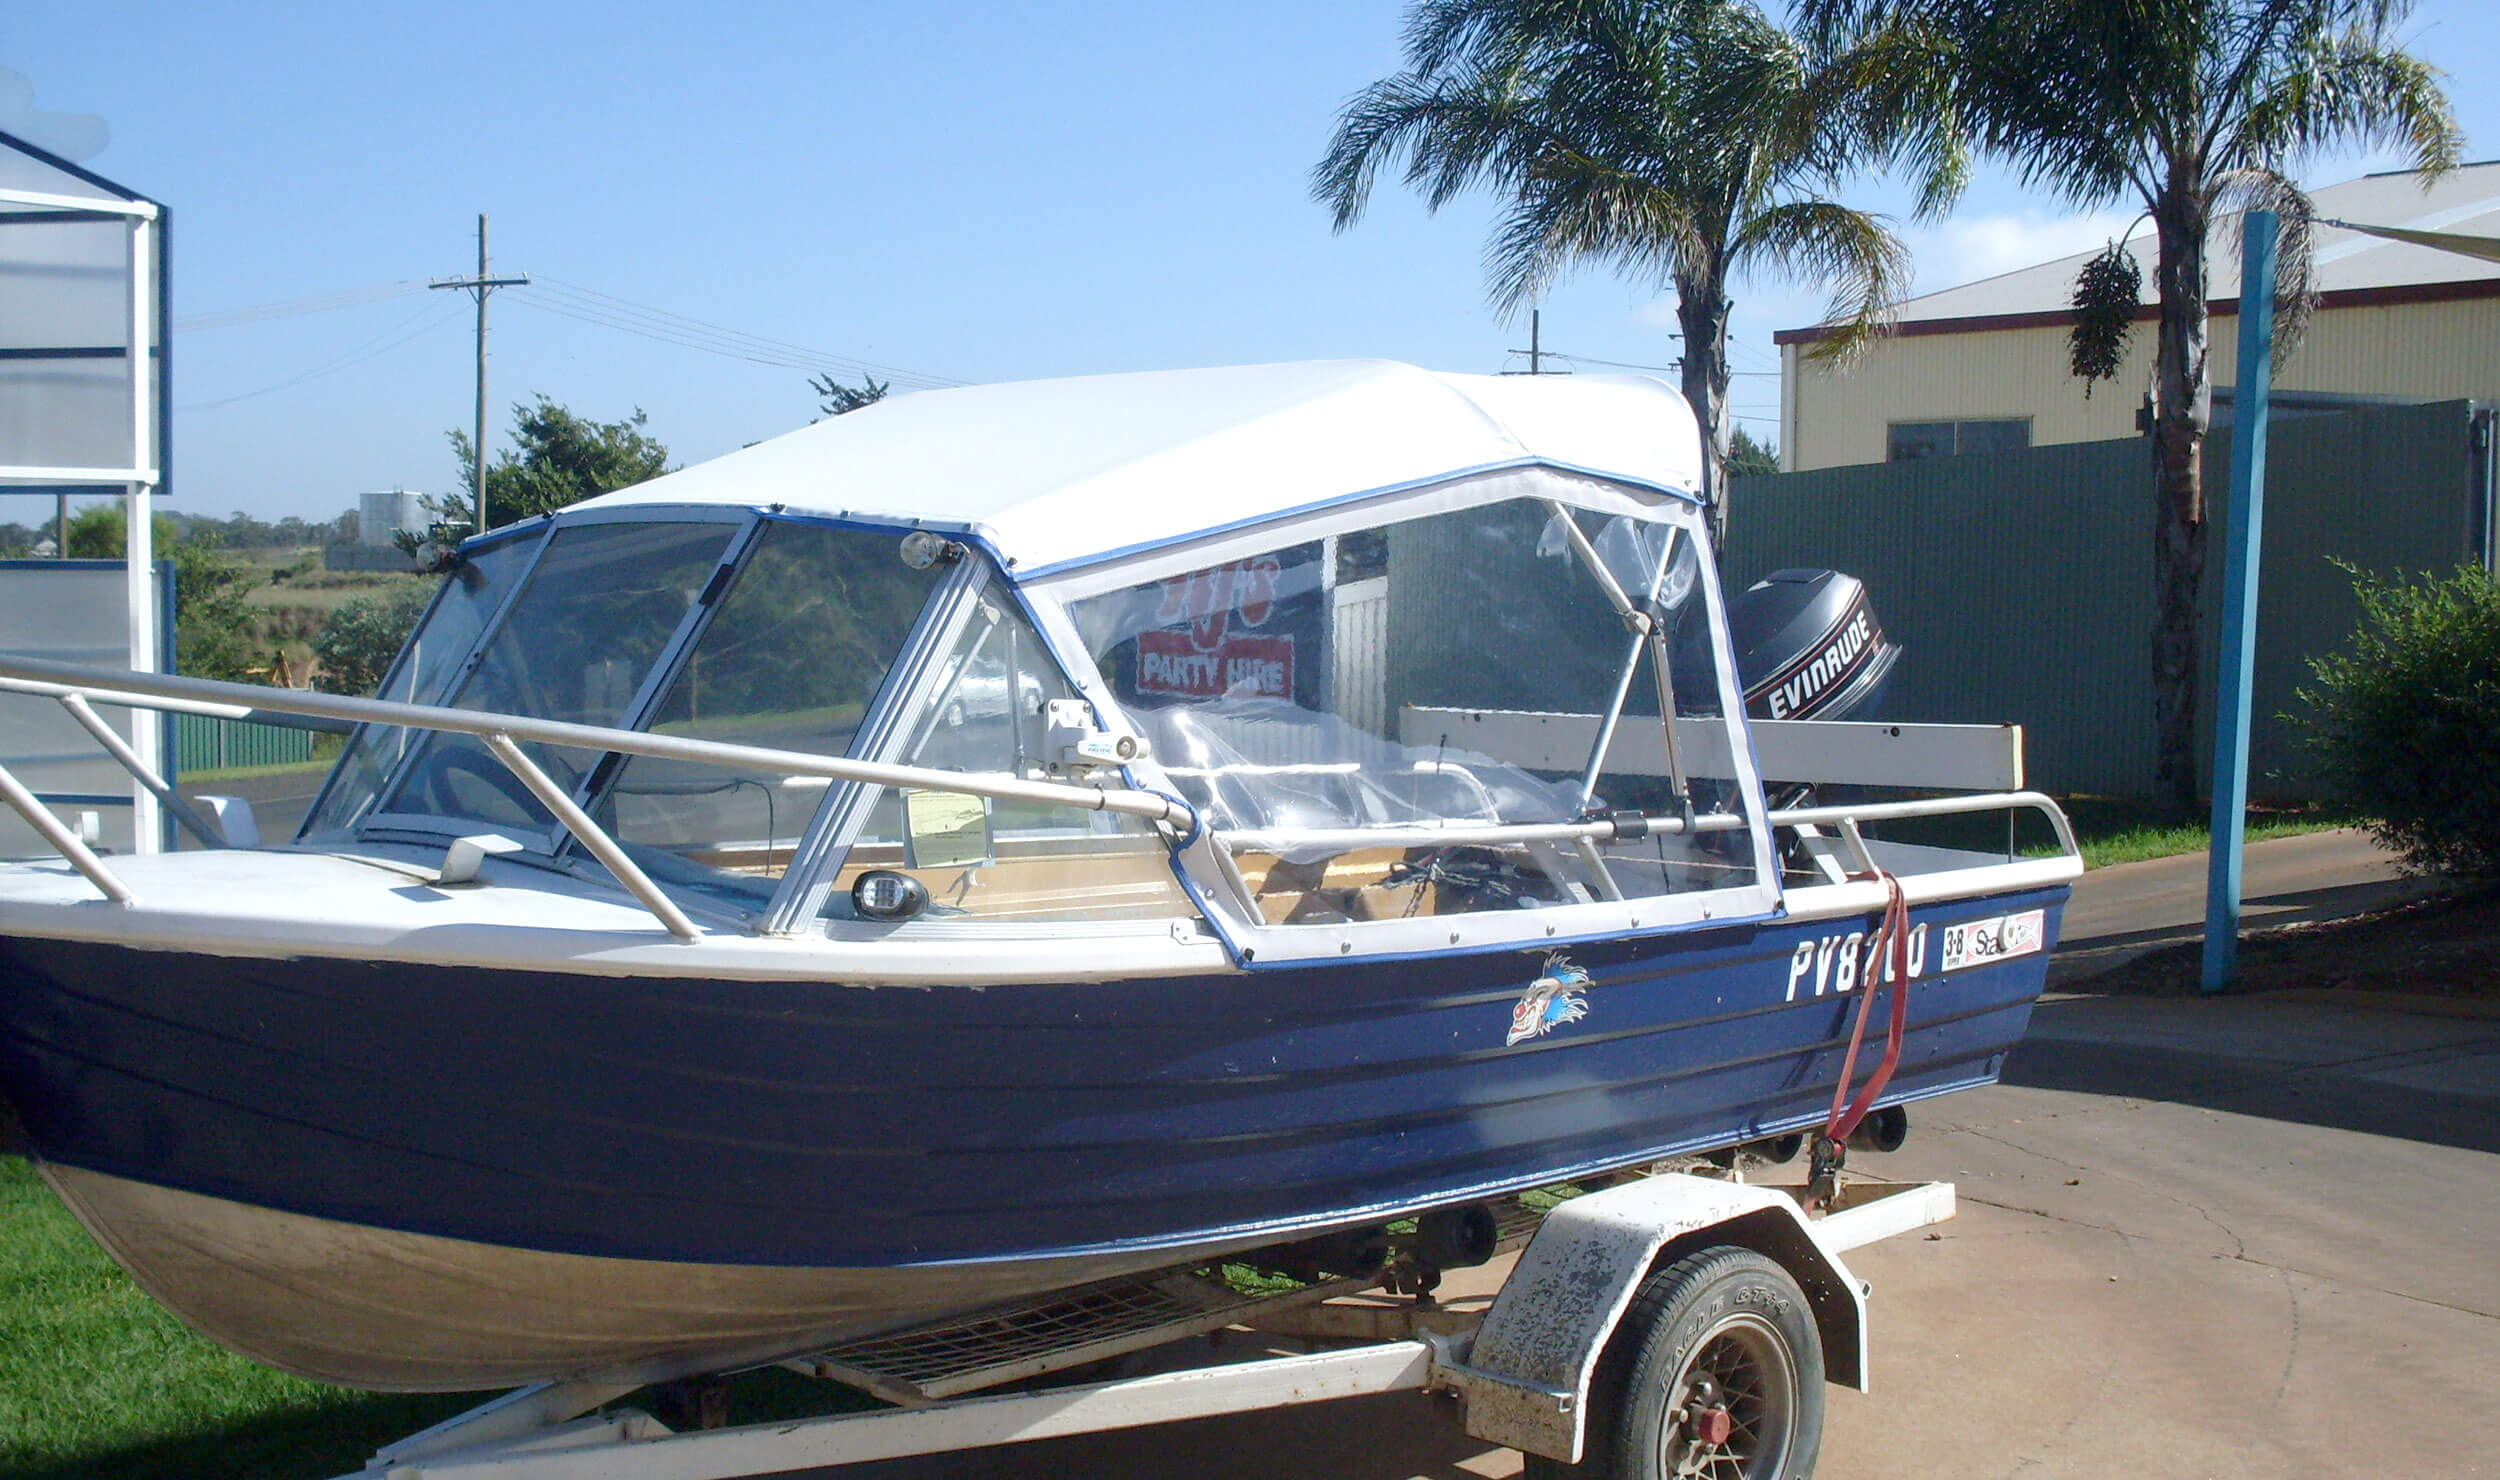 Blue and white boat with shade cover